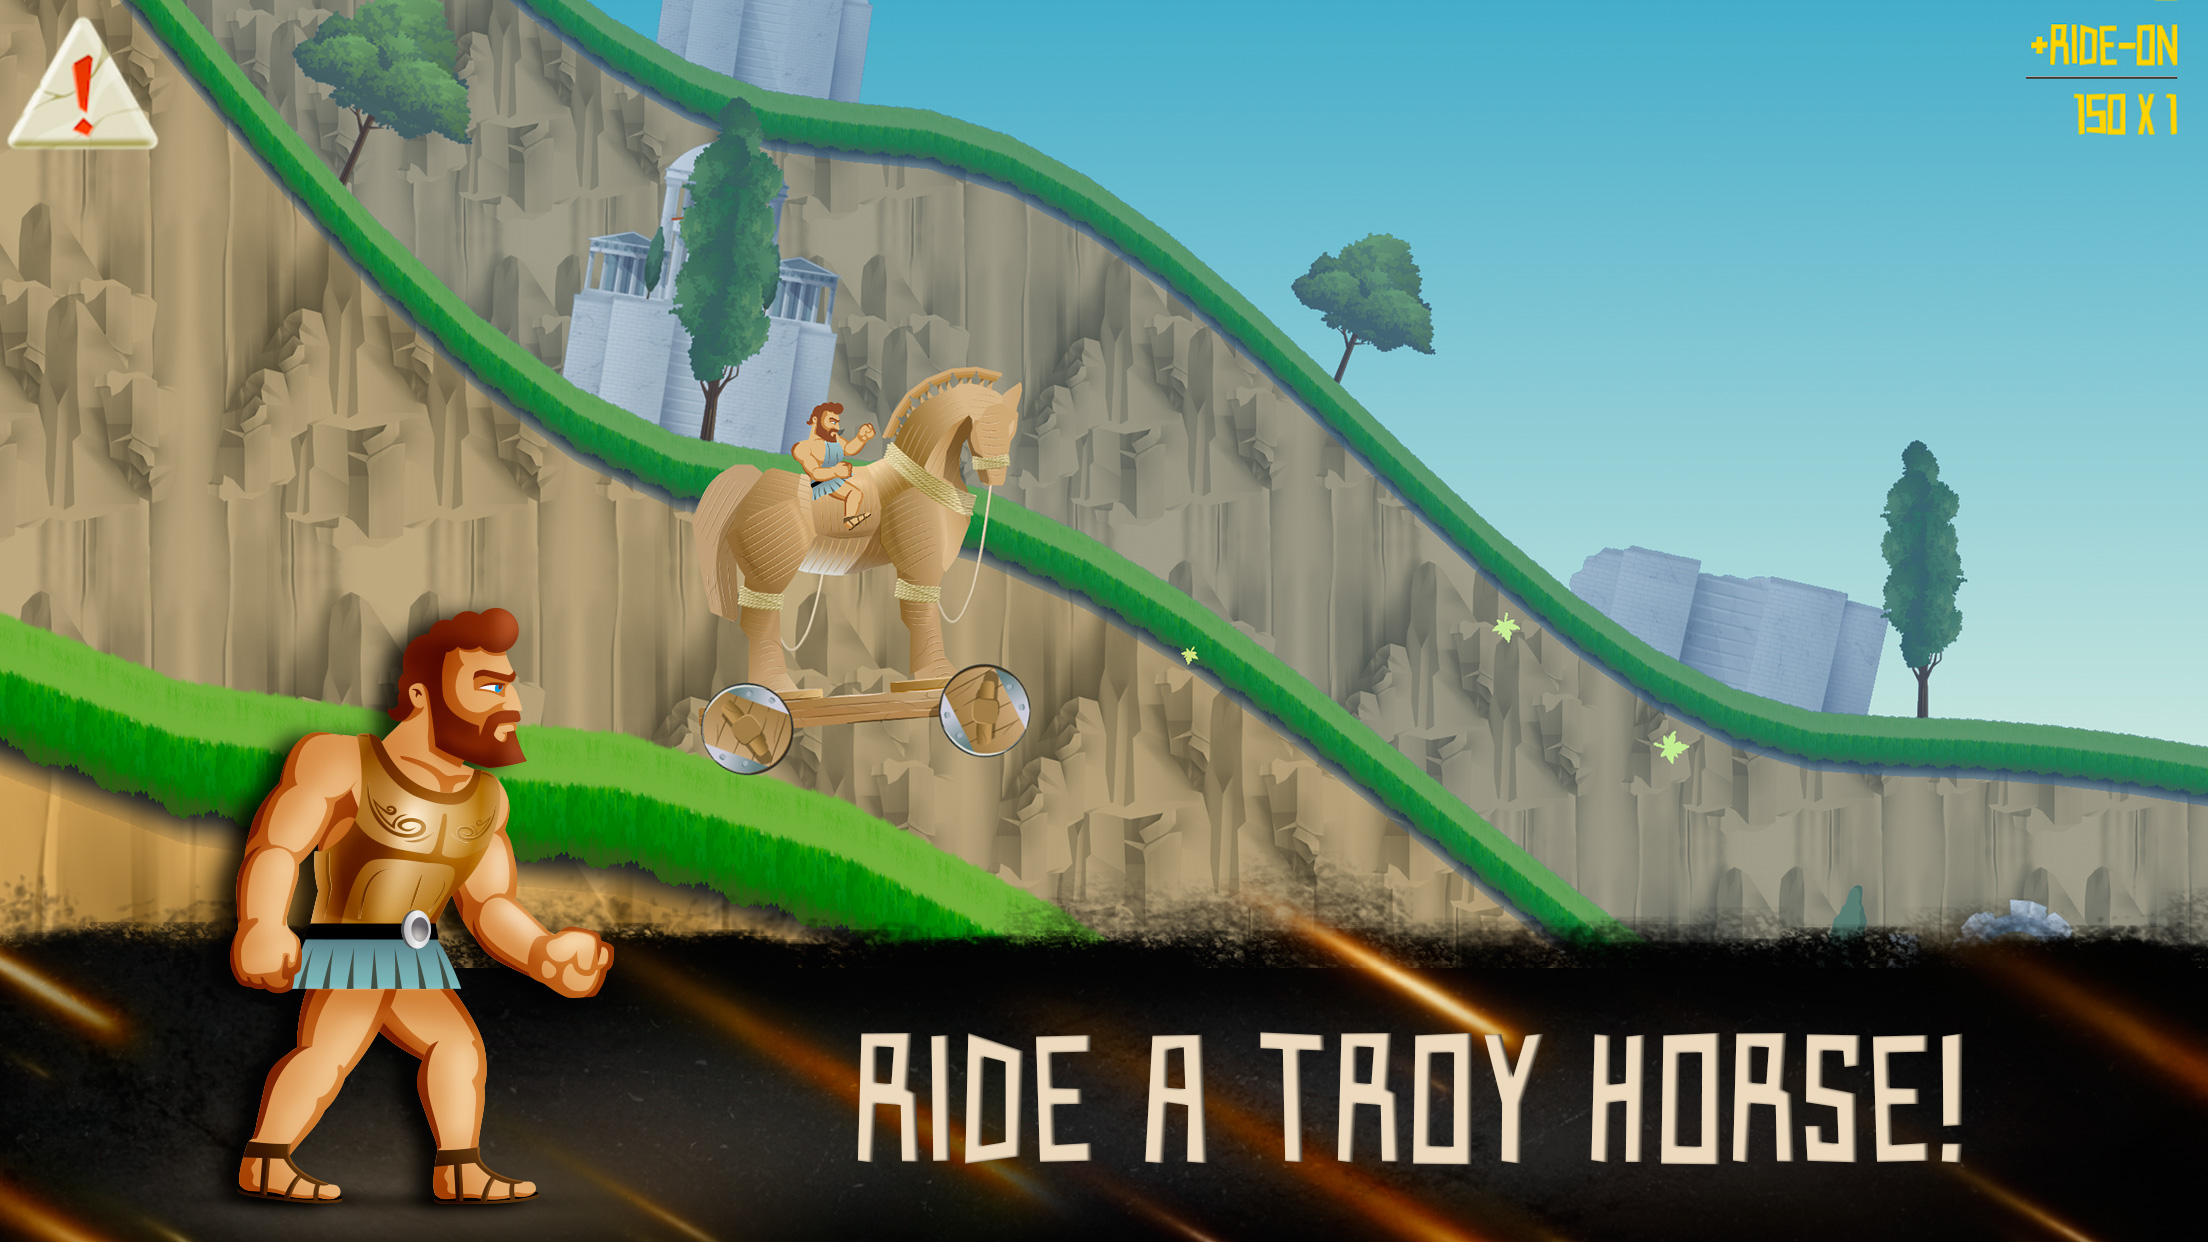 Sisyphus Job - Ride a troy horse